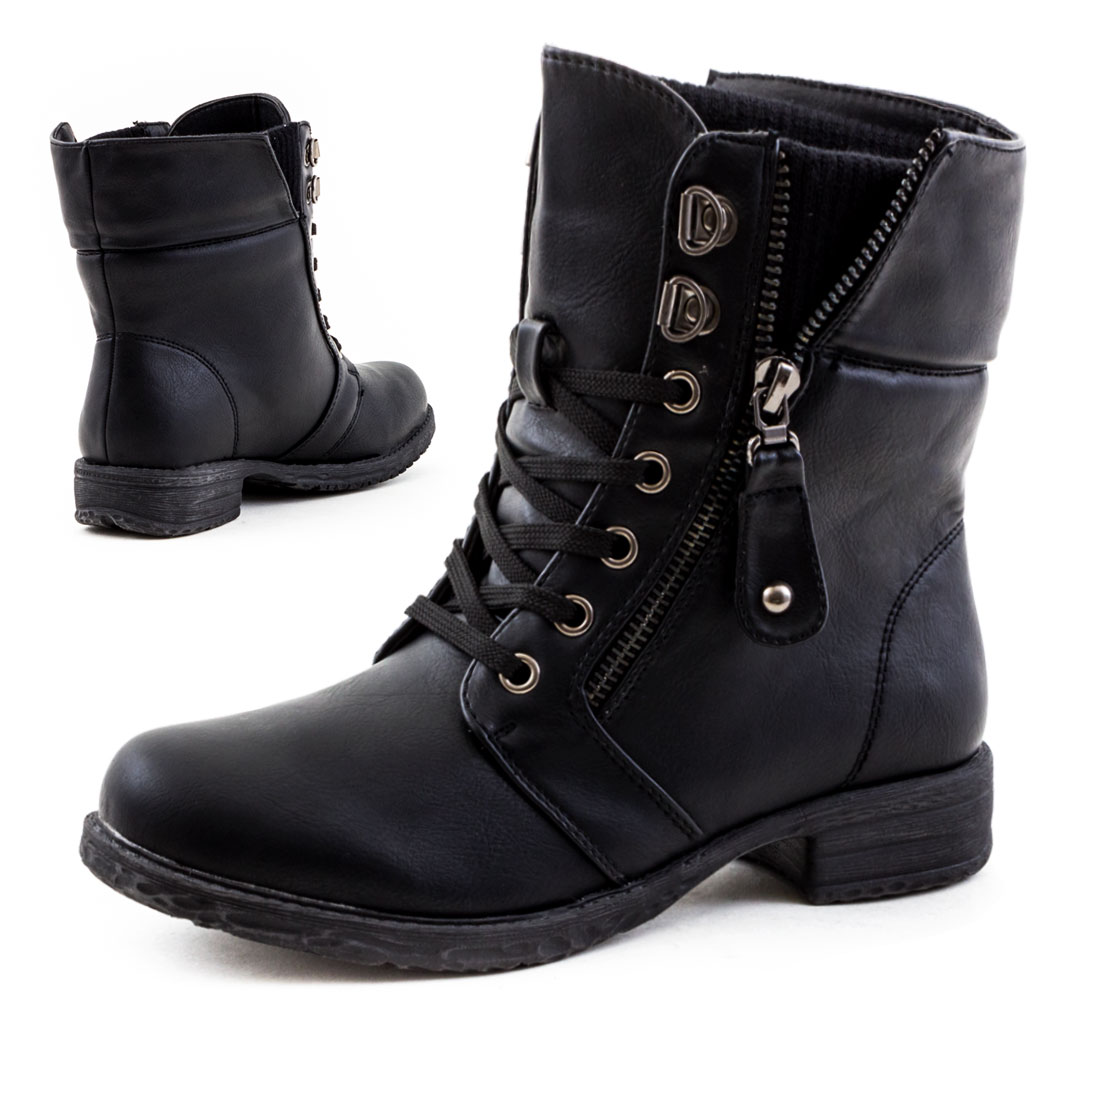 neu damen biker schn r boots spitze stiefeletten mit nieten gr 36 37 38 39 40 41 ebay. Black Bedroom Furniture Sets. Home Design Ideas